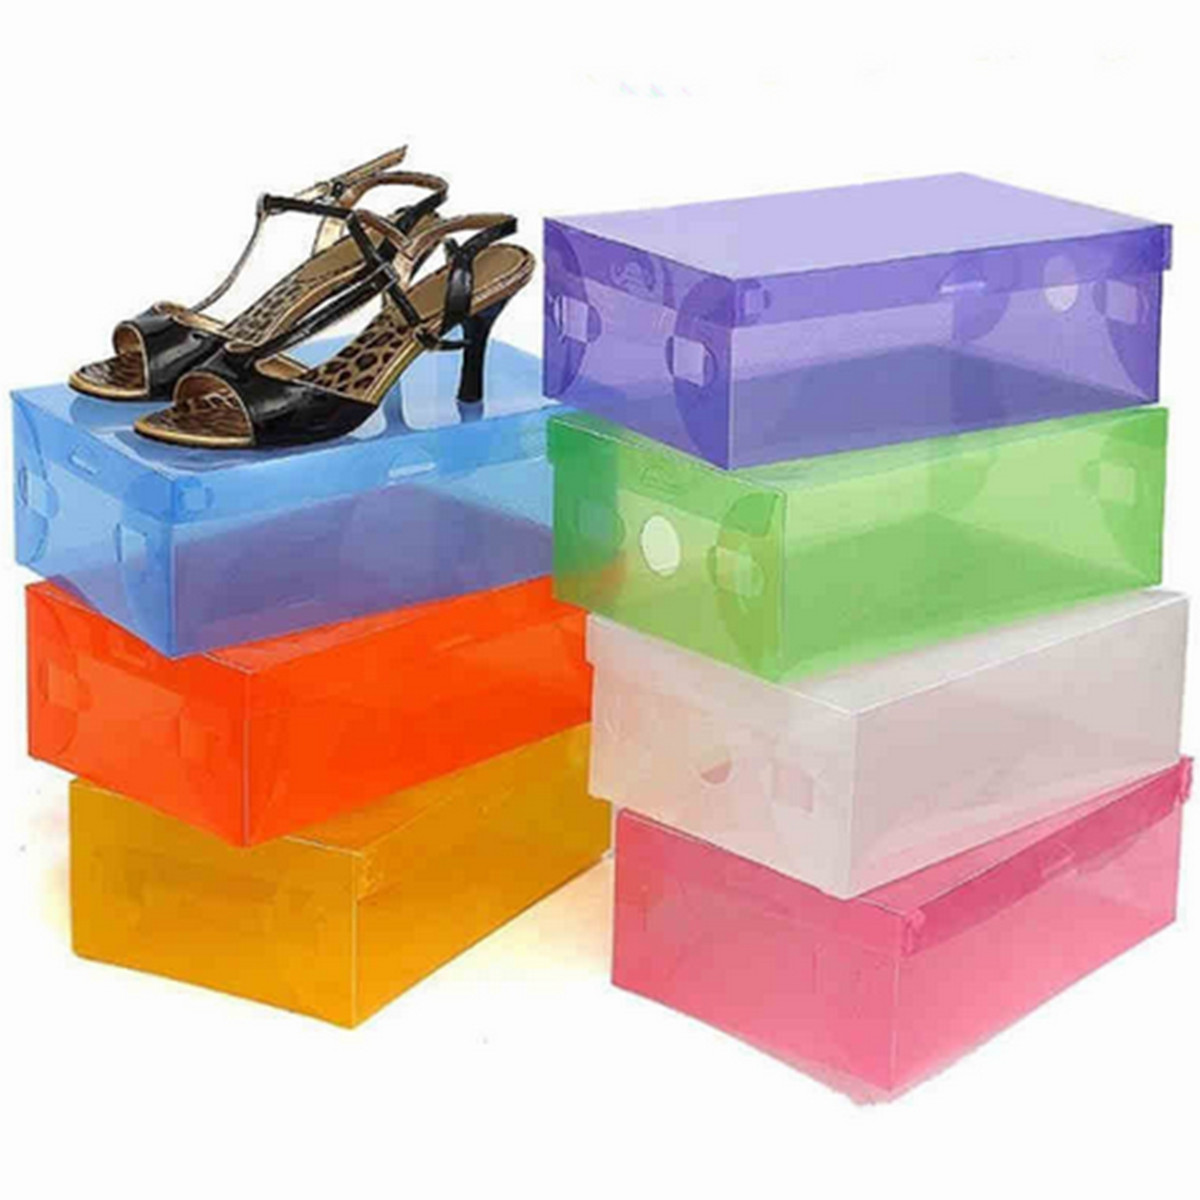 Rectangular Plastic Shoes Storage Container Stackable Foldable Shoes Storage Holder Home Space Saving Storing Gadgets Box Bin(China (Mainland))